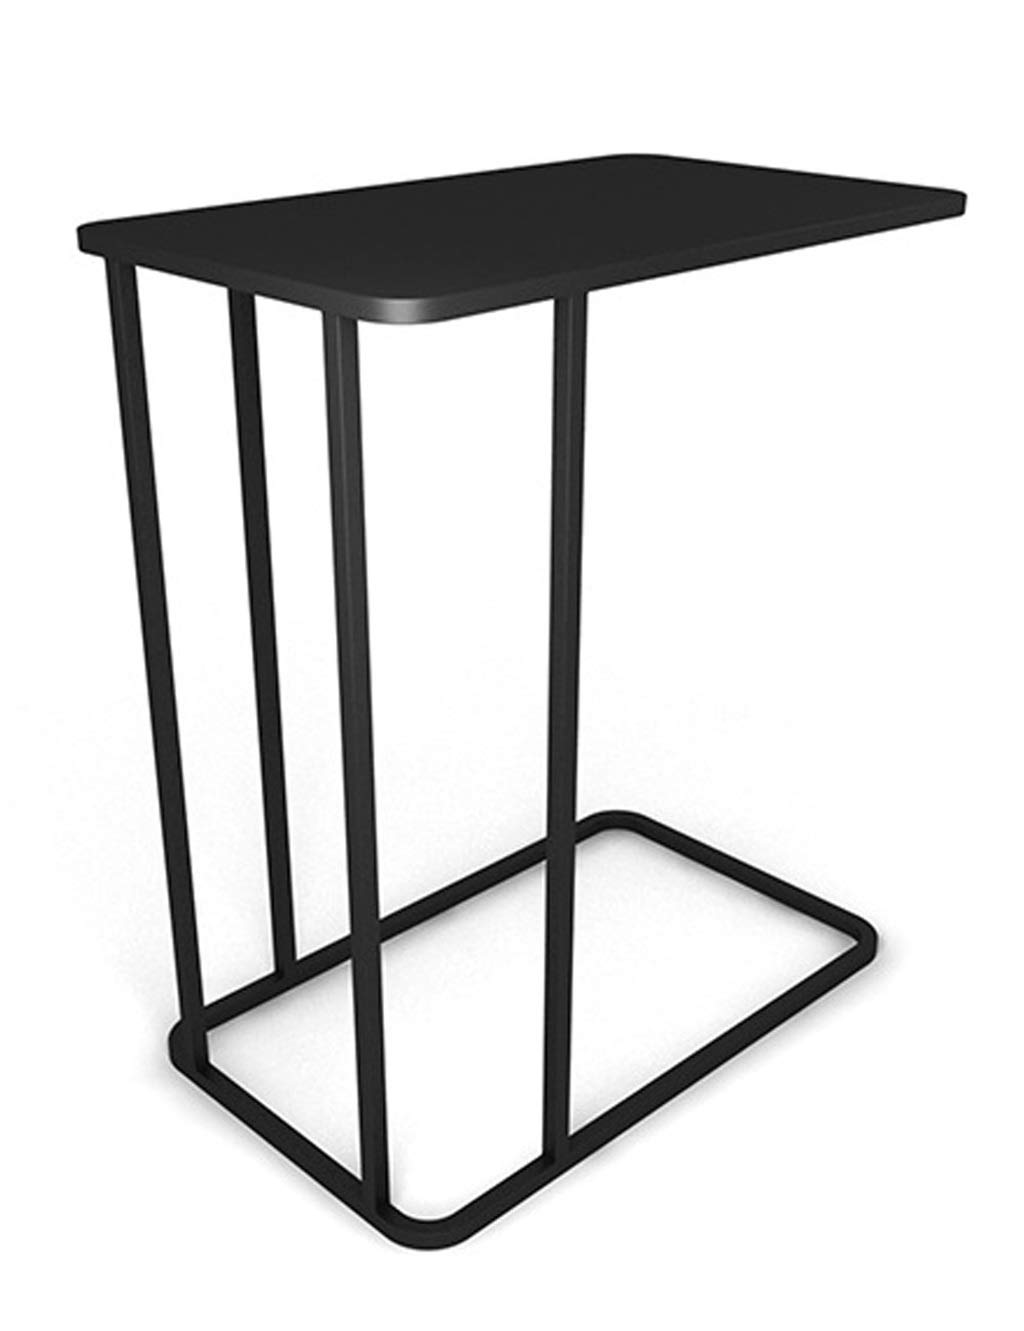 Black Sofa Side A Few Coffee Table Modern Minimalist Small Apartment Moving Bedside Table Creative Wrought Iron Side Table Side Cabinet (Black, White, gold)